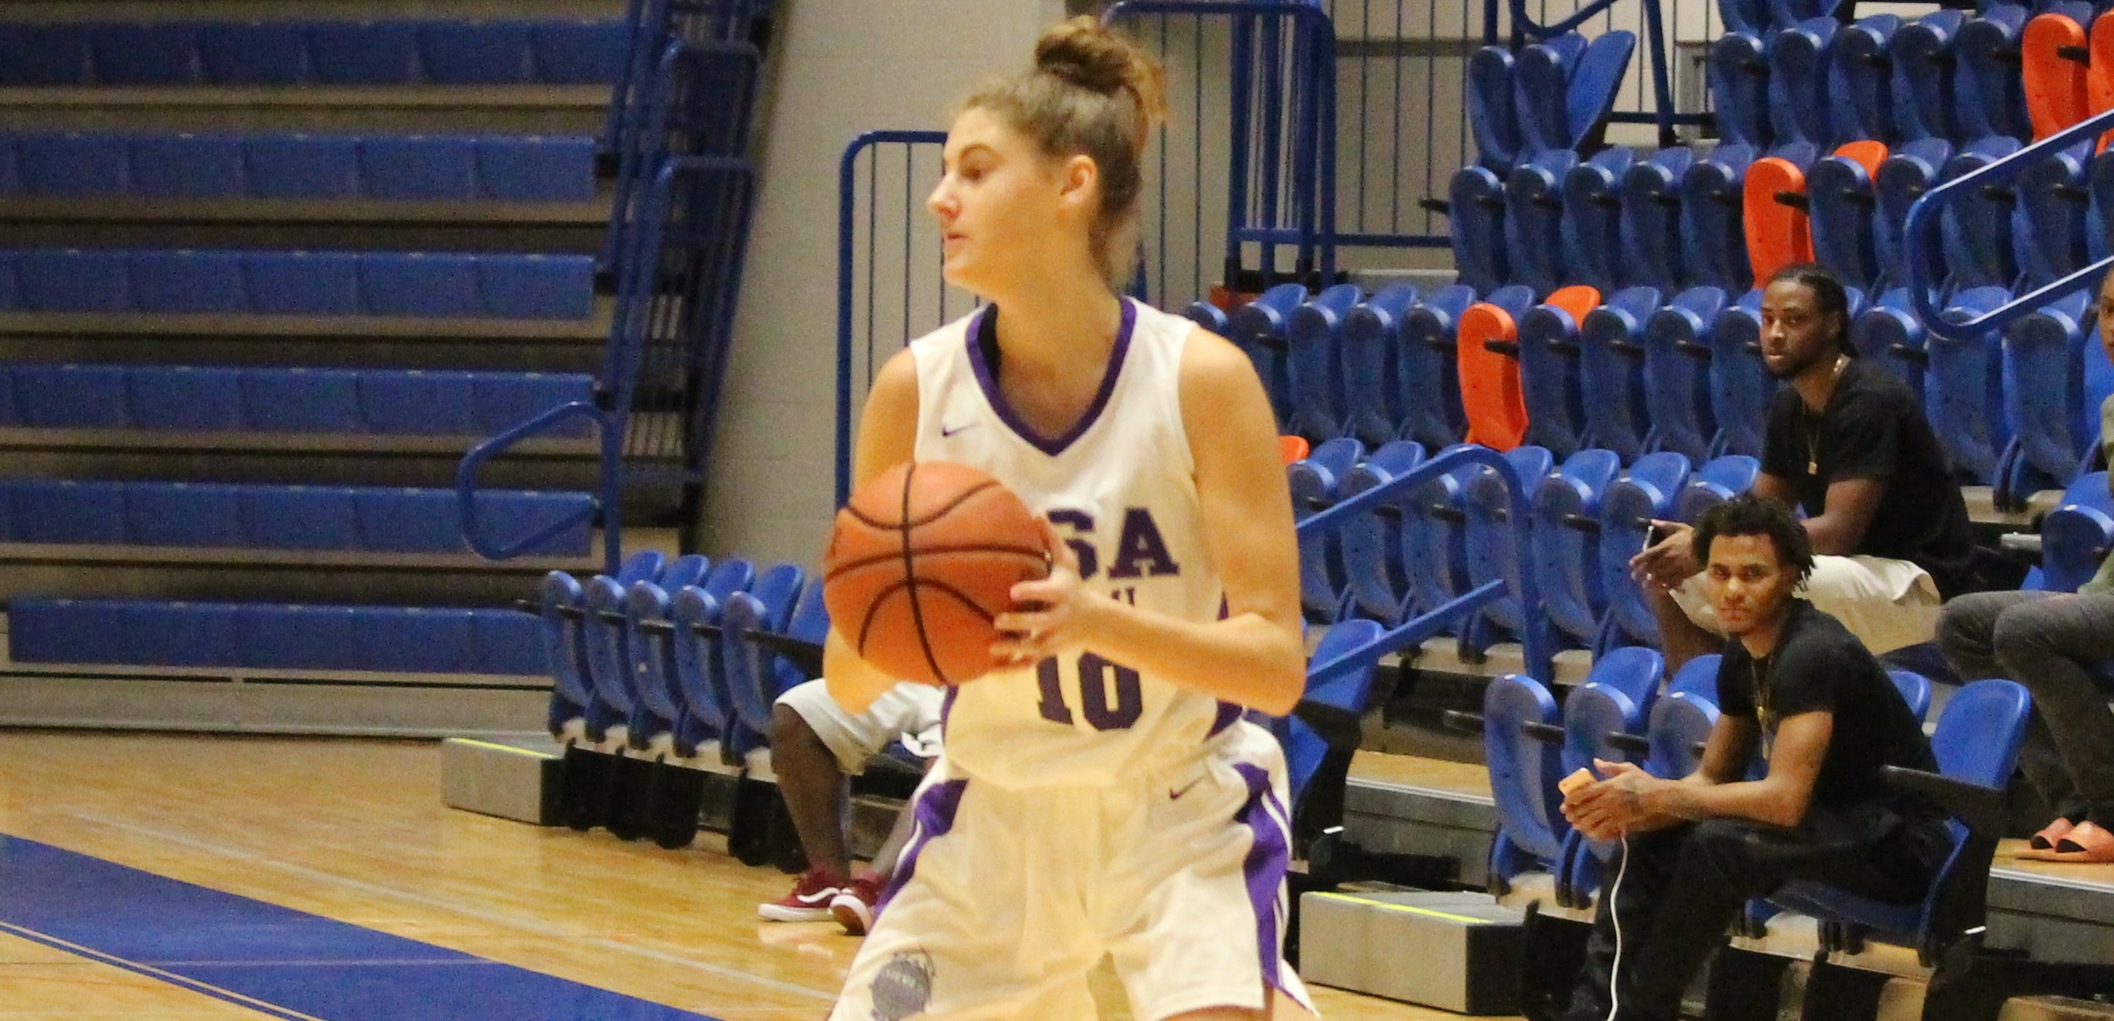 Austin Has Big Night As ASA Miami Routs North Central Missouri